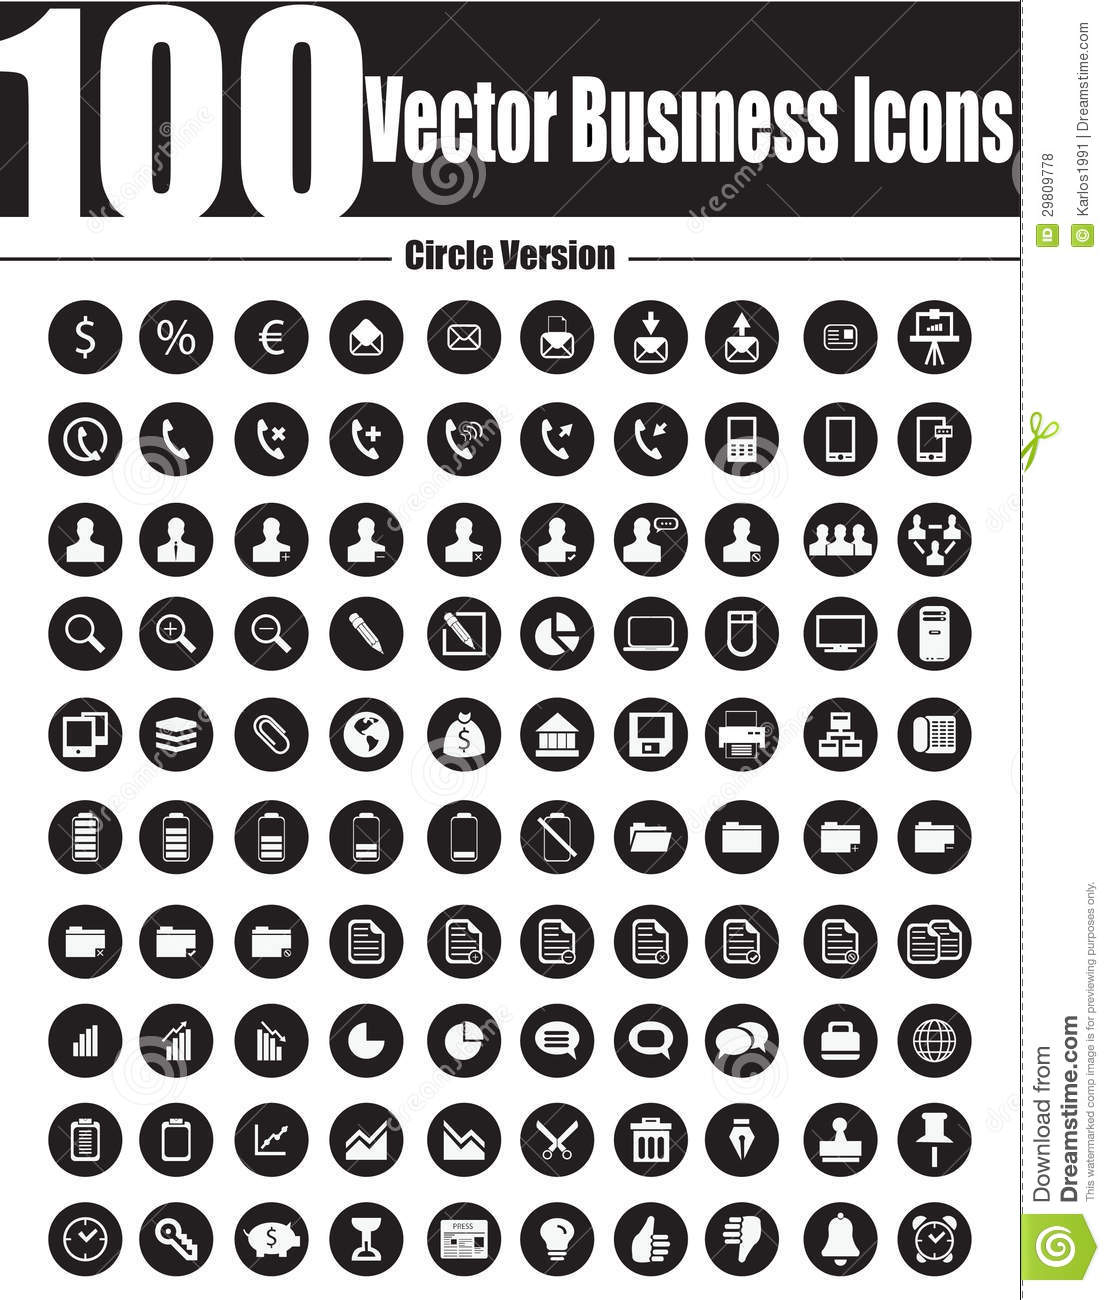 14 free resume icons images